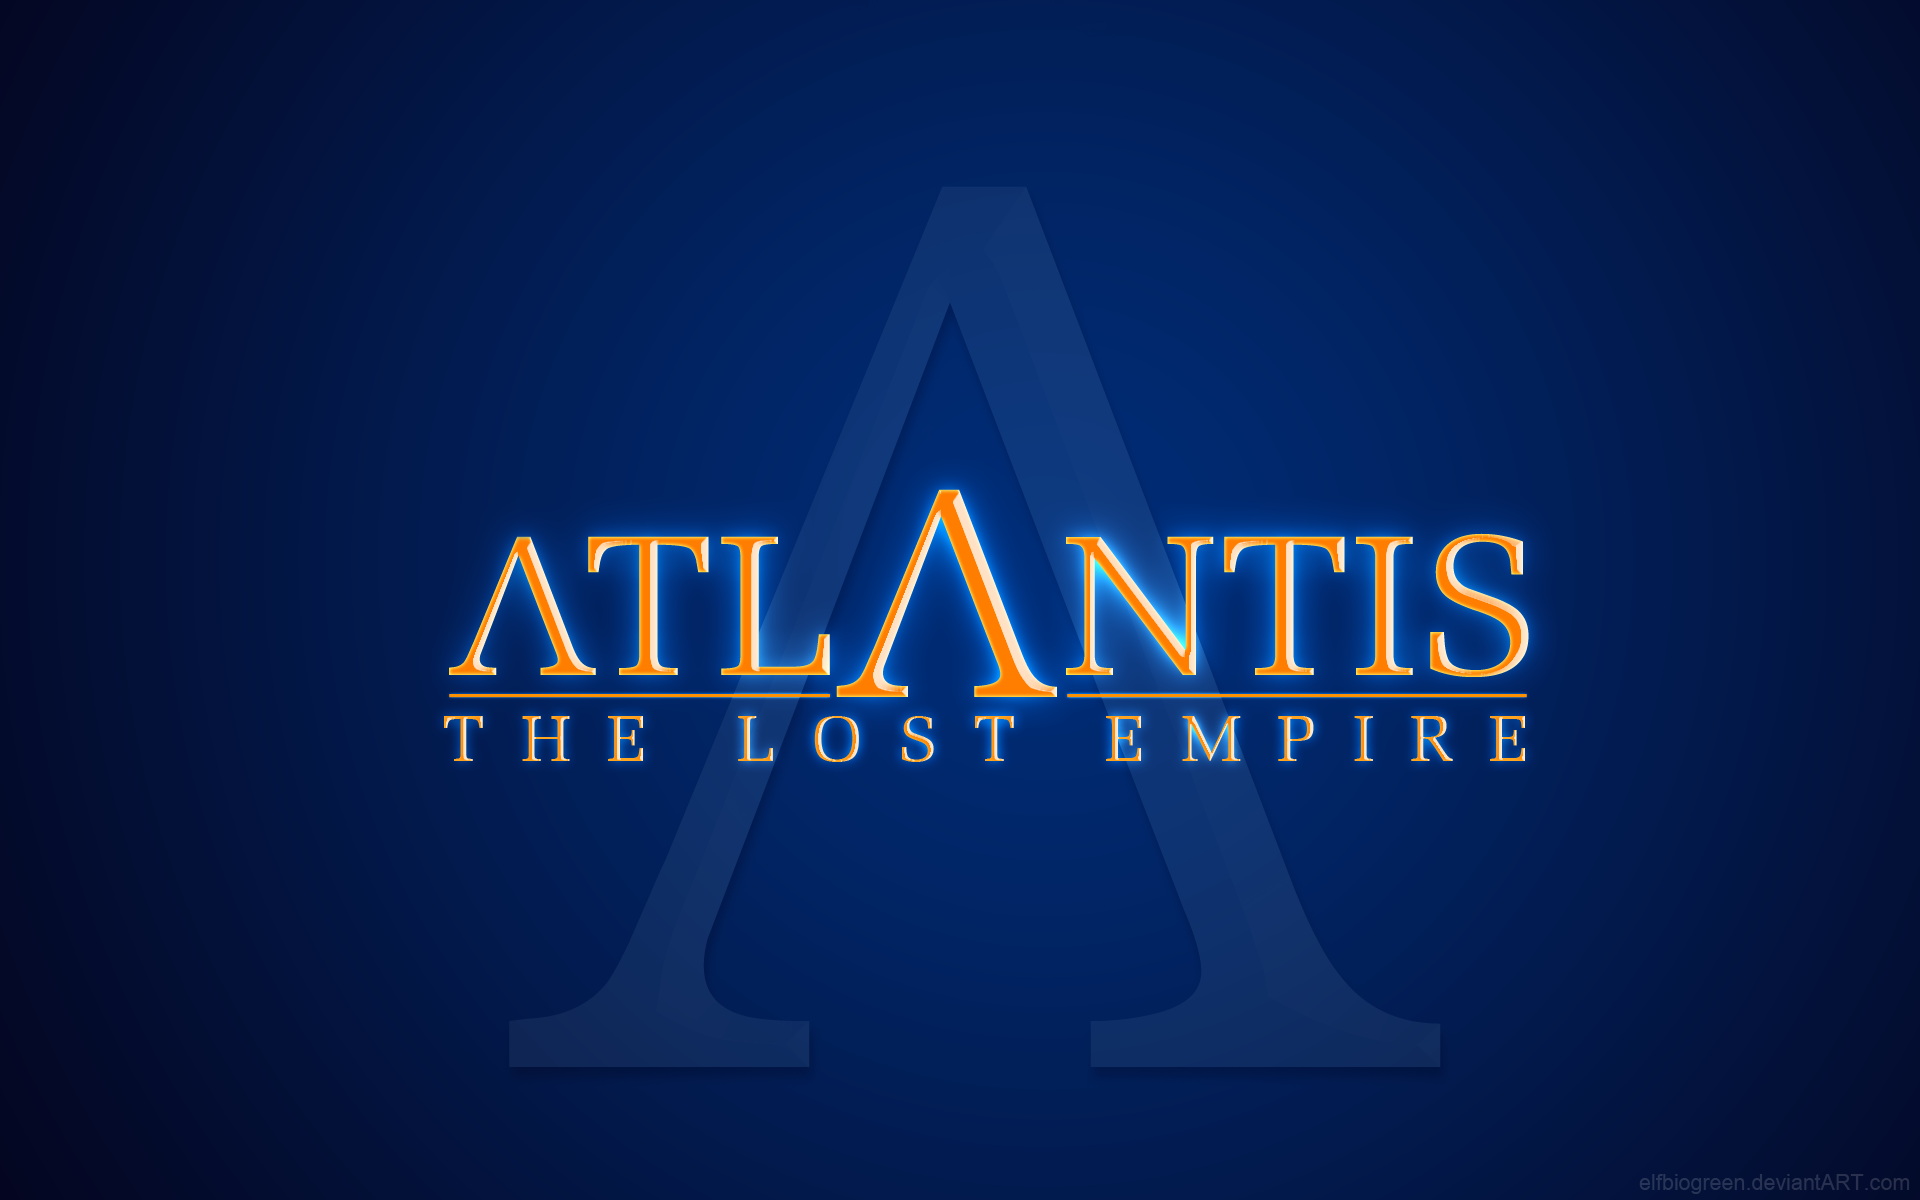 Atlantis: The Lost Empire (2001 film)